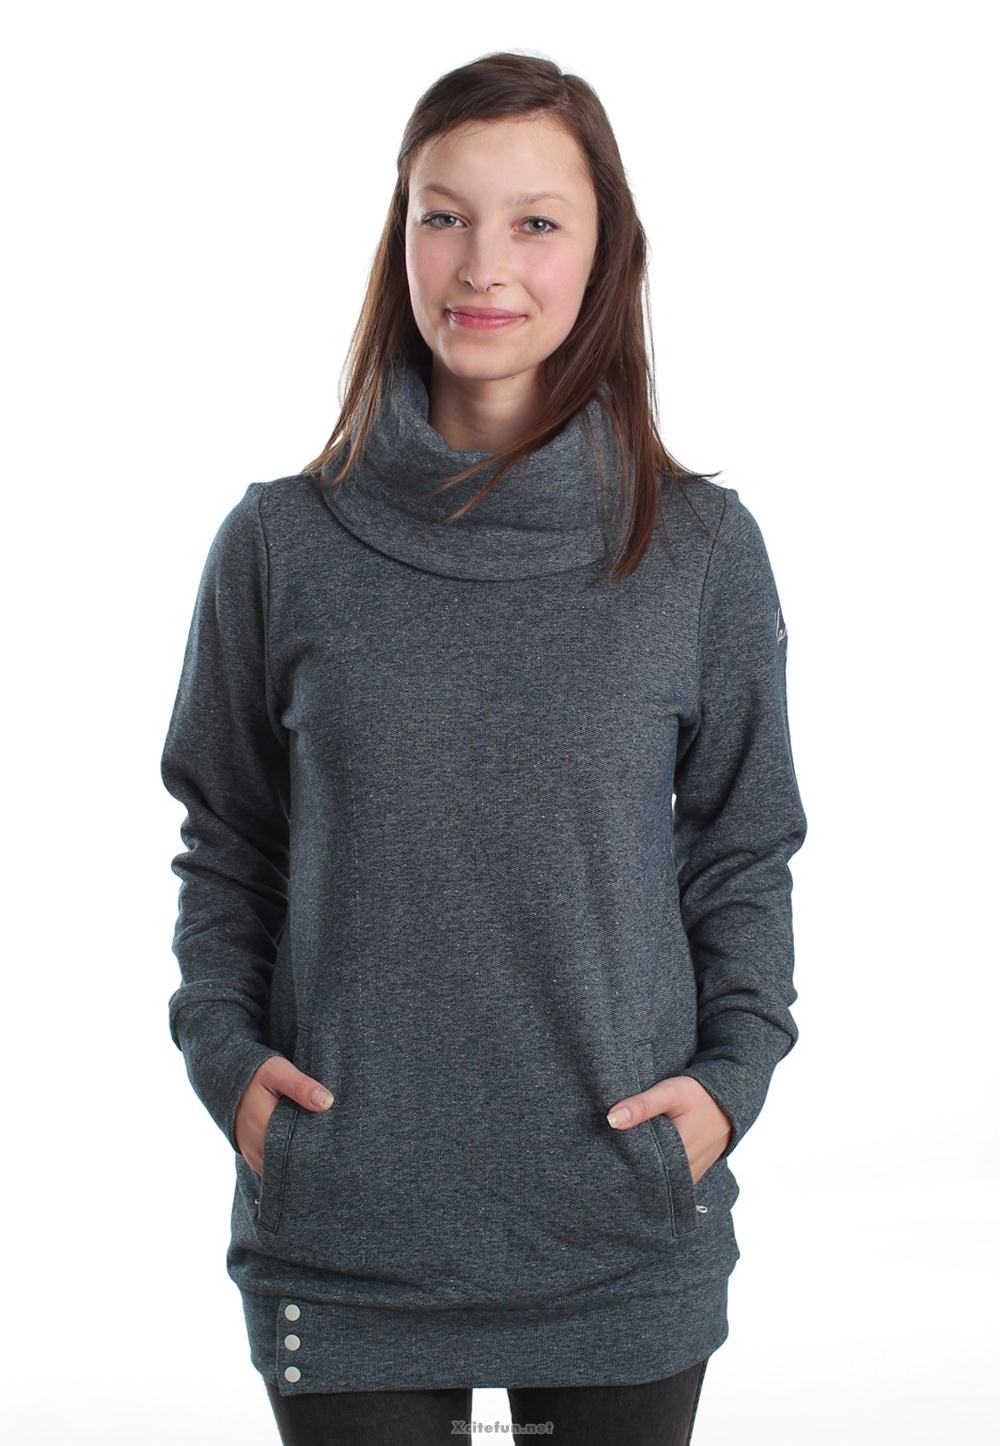 Winter Wool Sweater For Girls  XciteFunnet